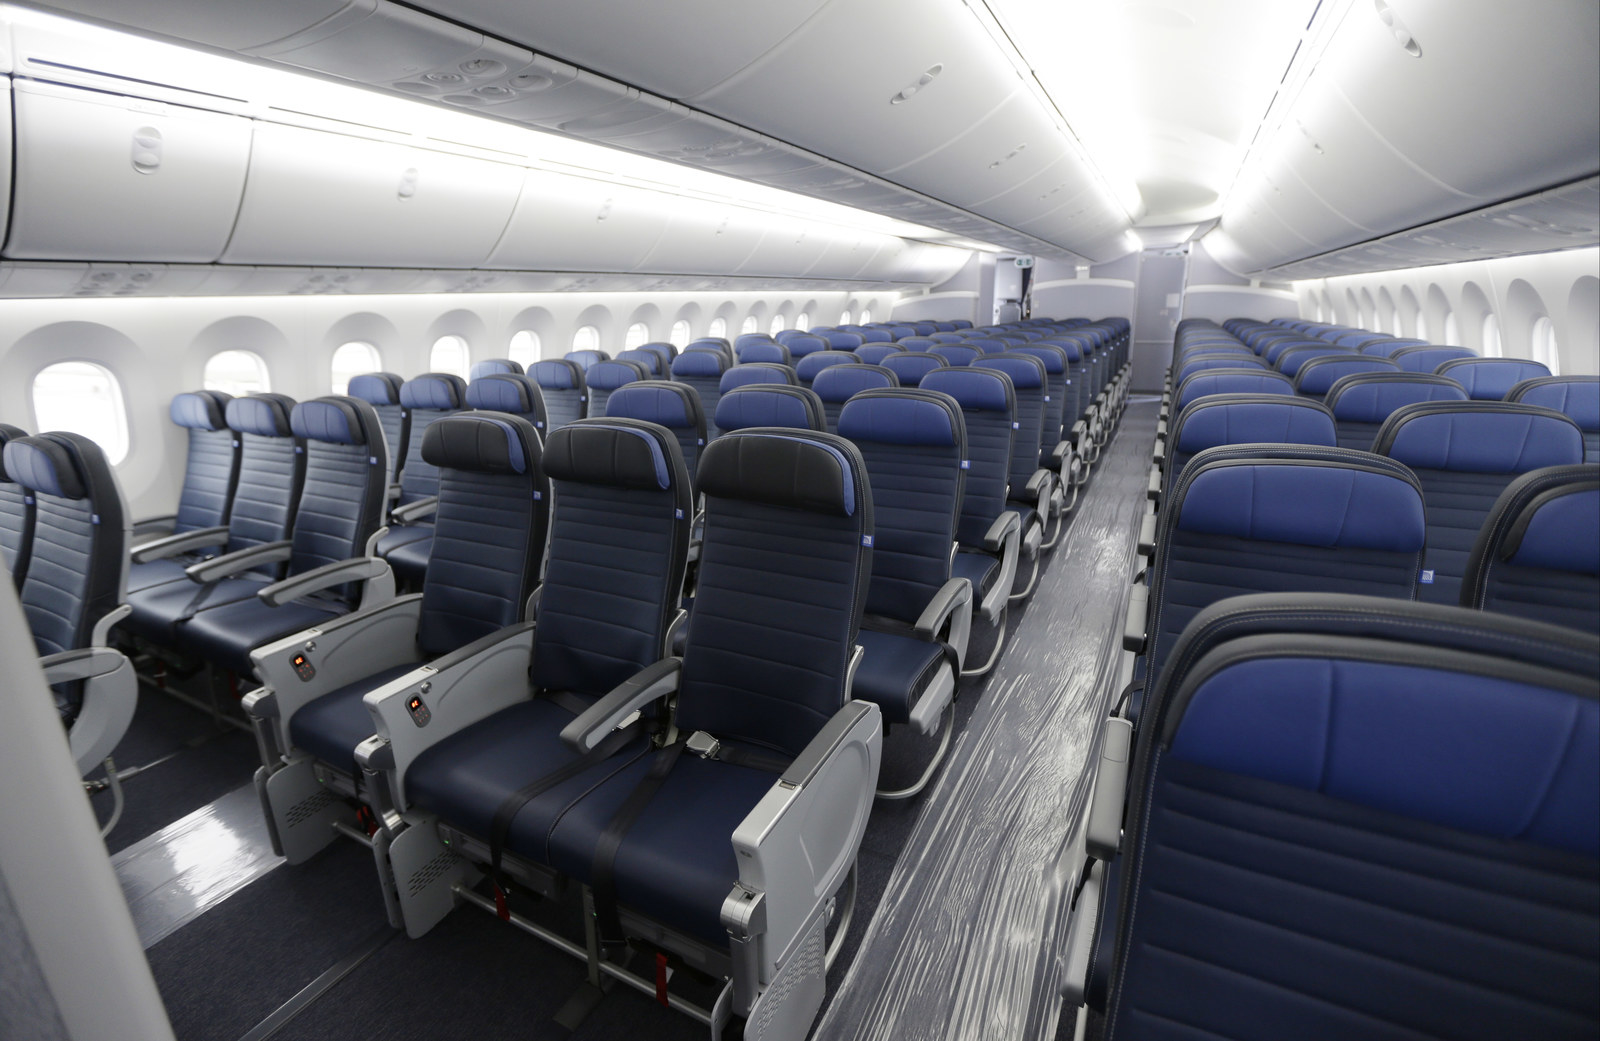 FAA Defends Its Decision Not To Limit How Small Seats Can Be On Airplanes